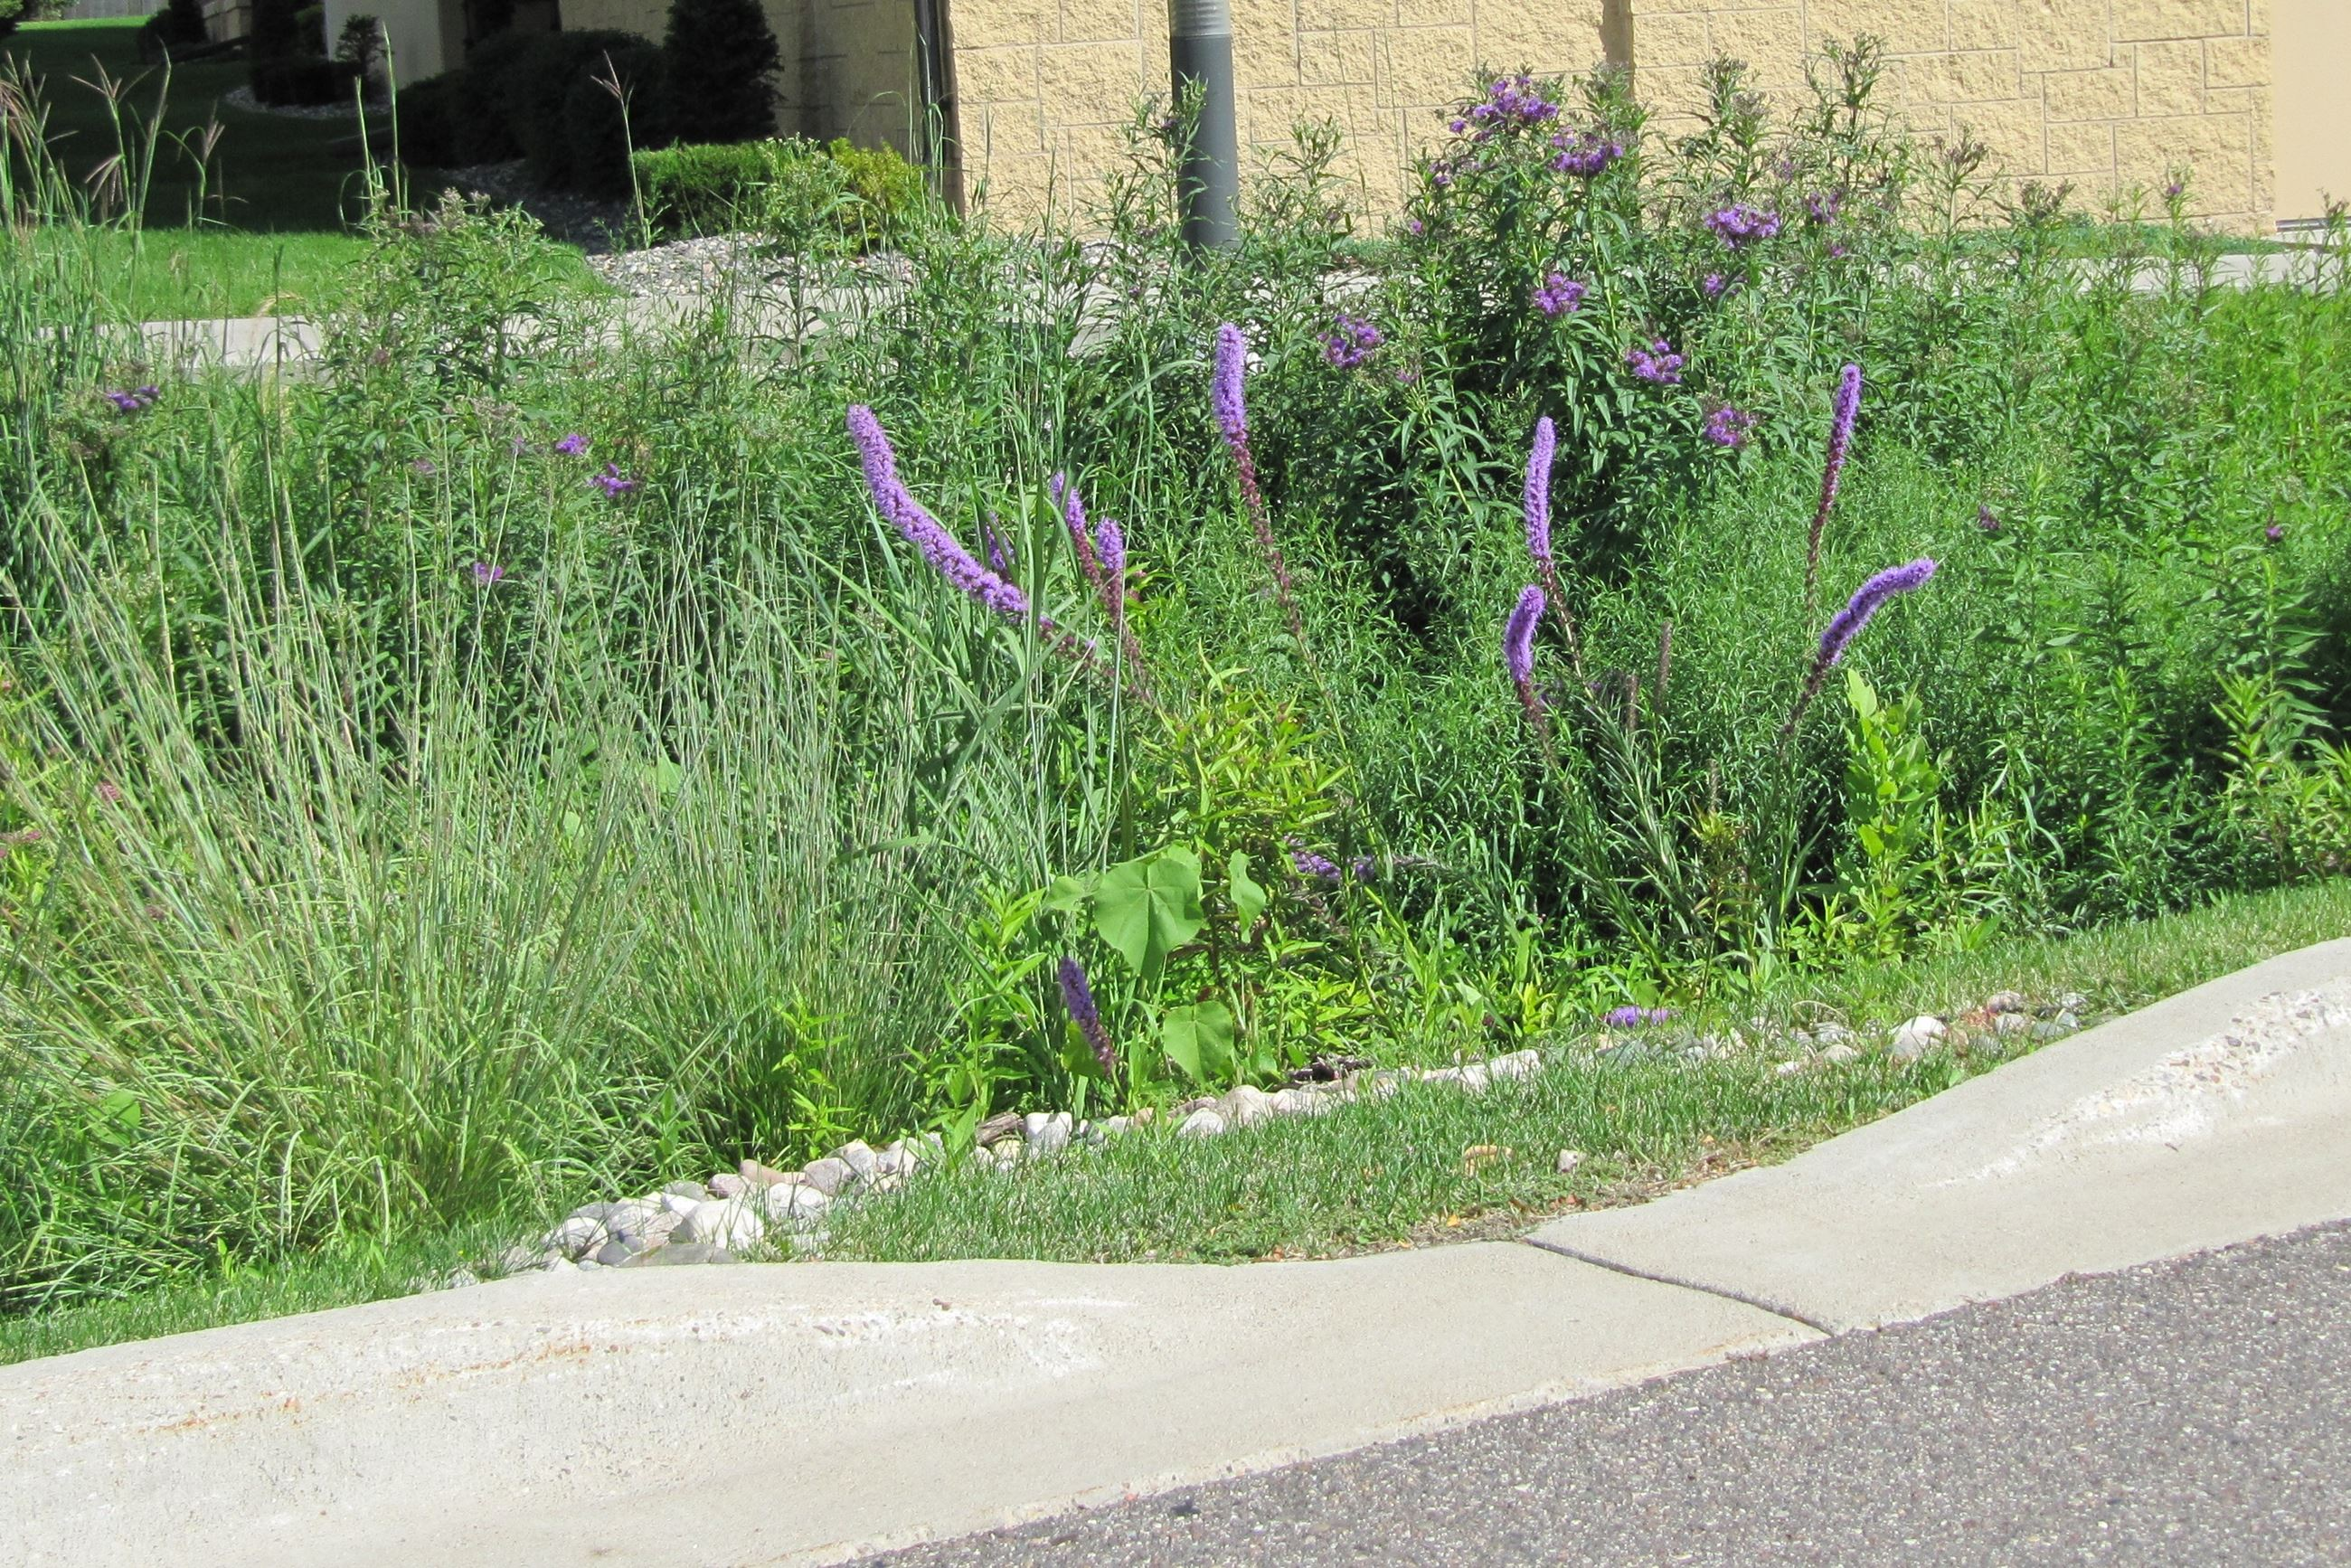 Raingarden with liatris